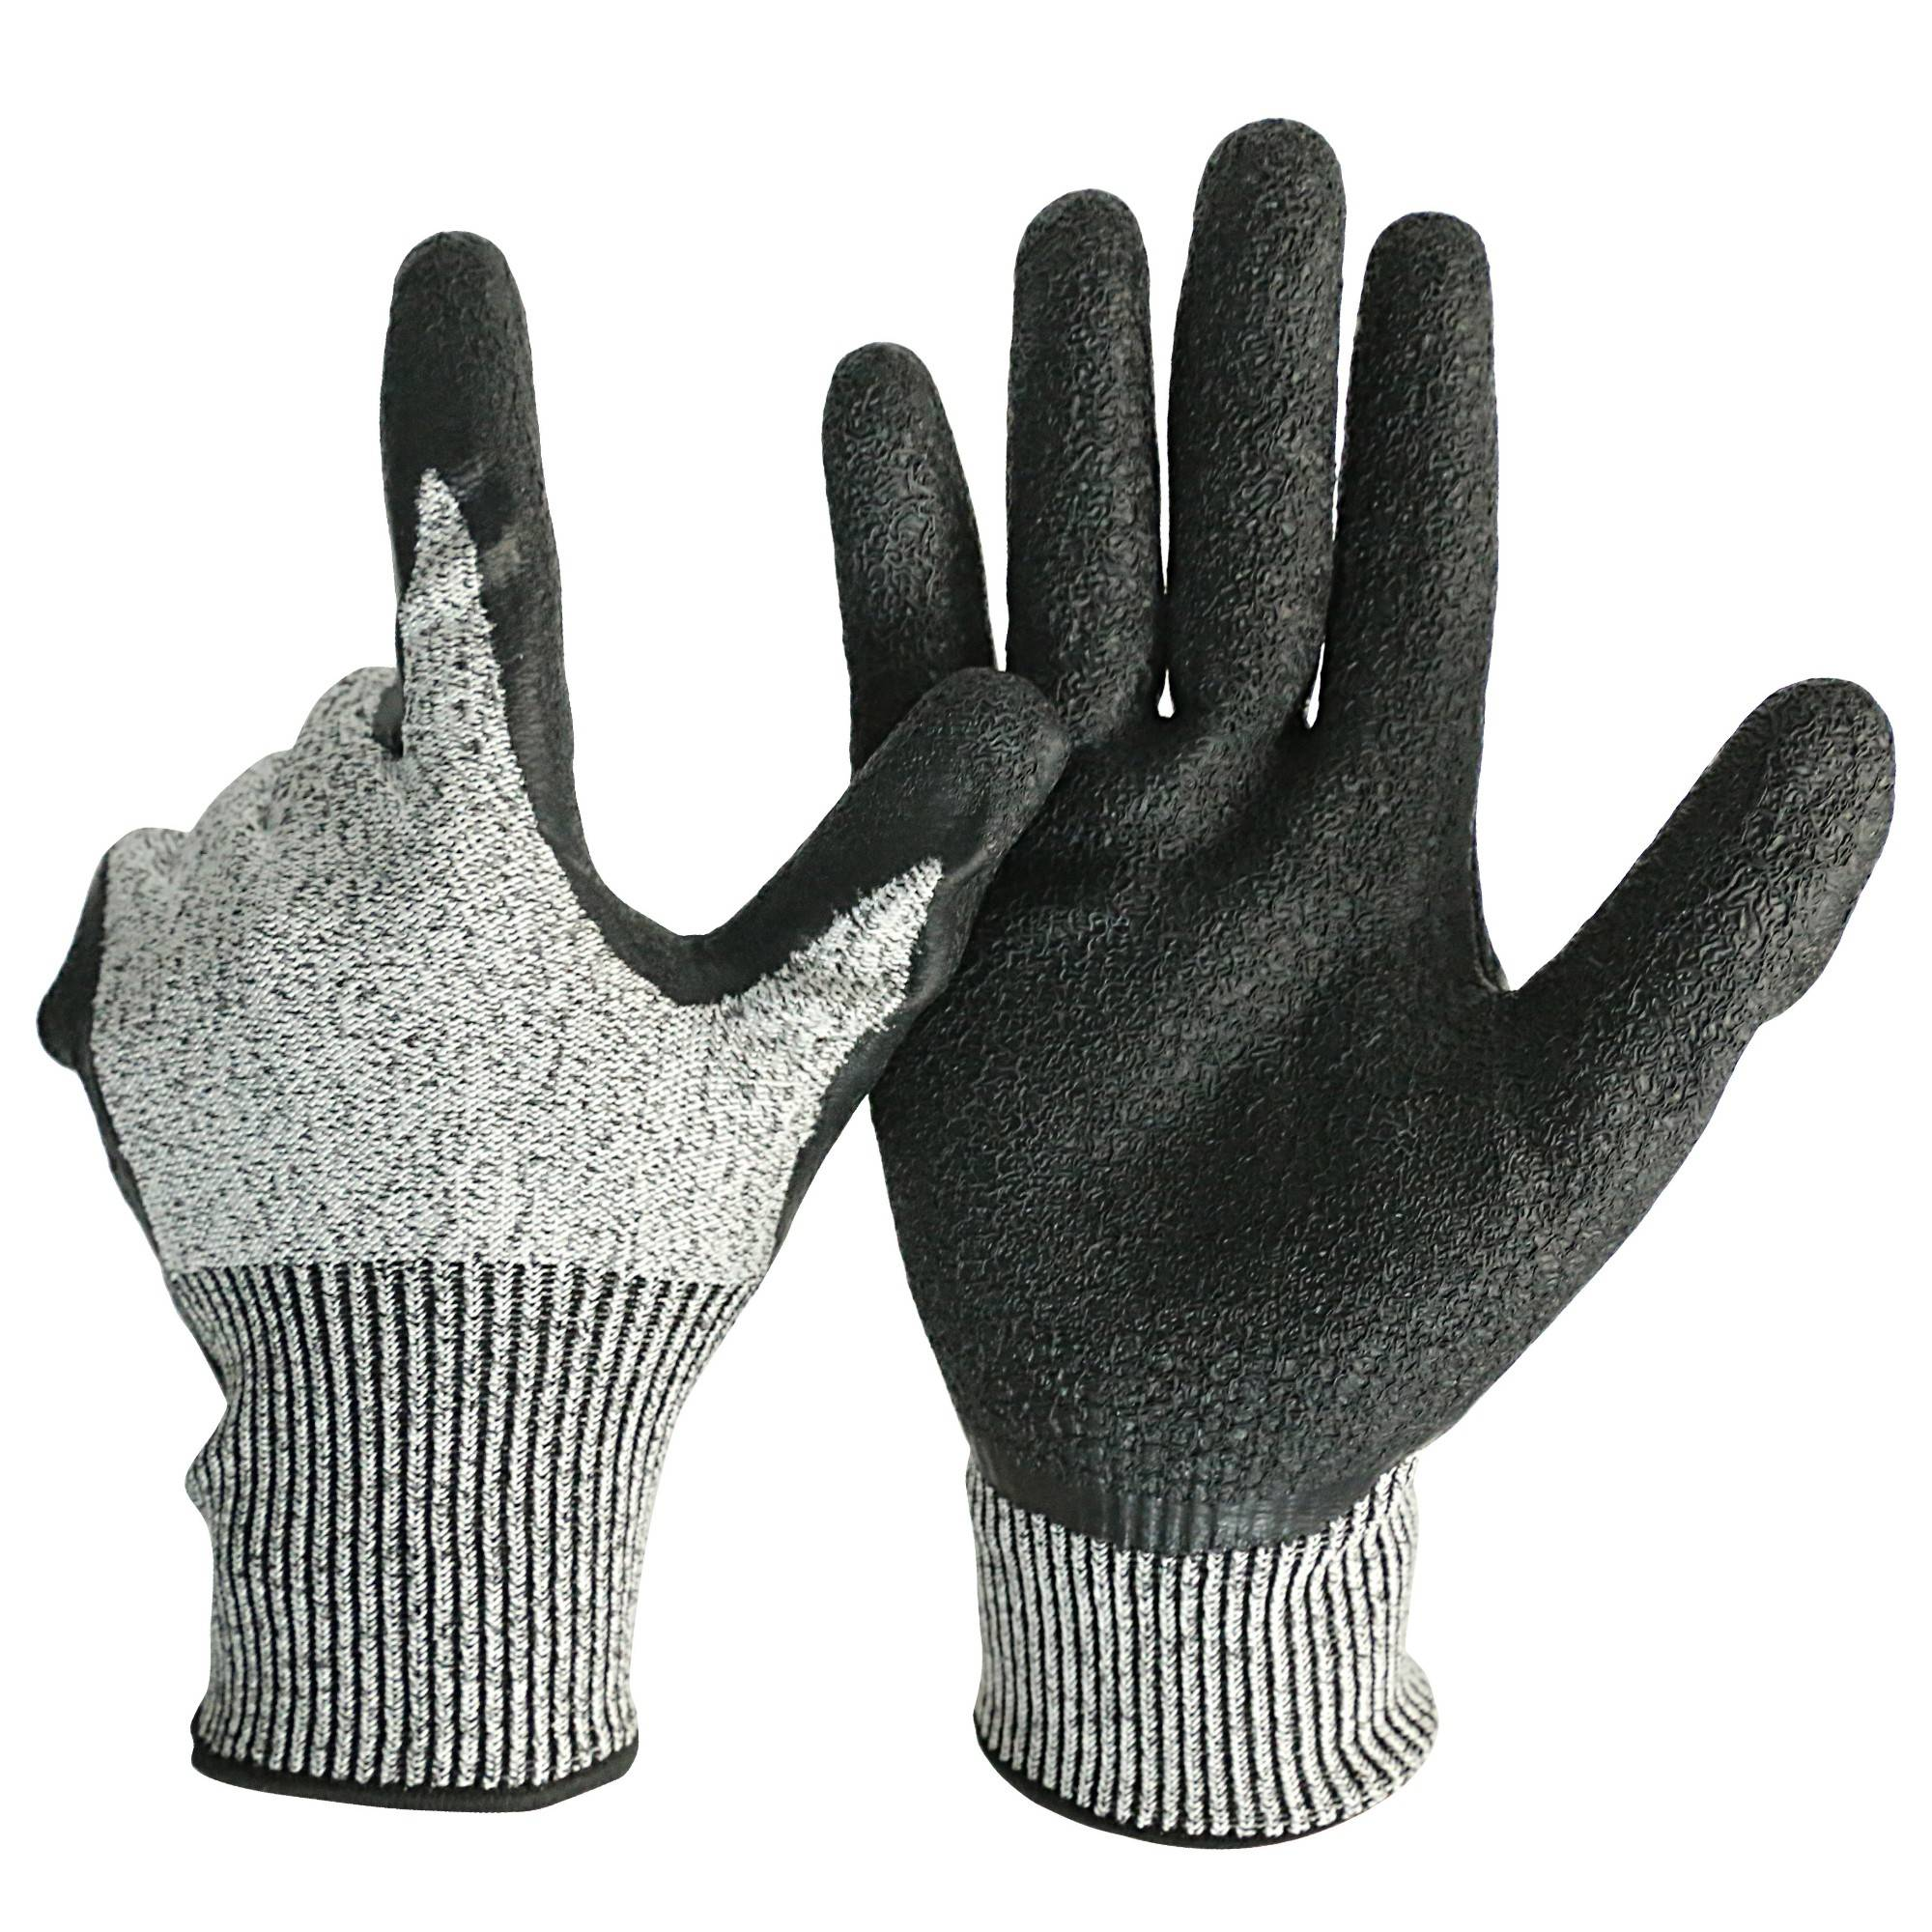 KIM YUAN Cut Resistant Gloves Mechanic General Utility Breathable Work Gloves Touch Screen,Skid/Abrasion Resistant, Pefect